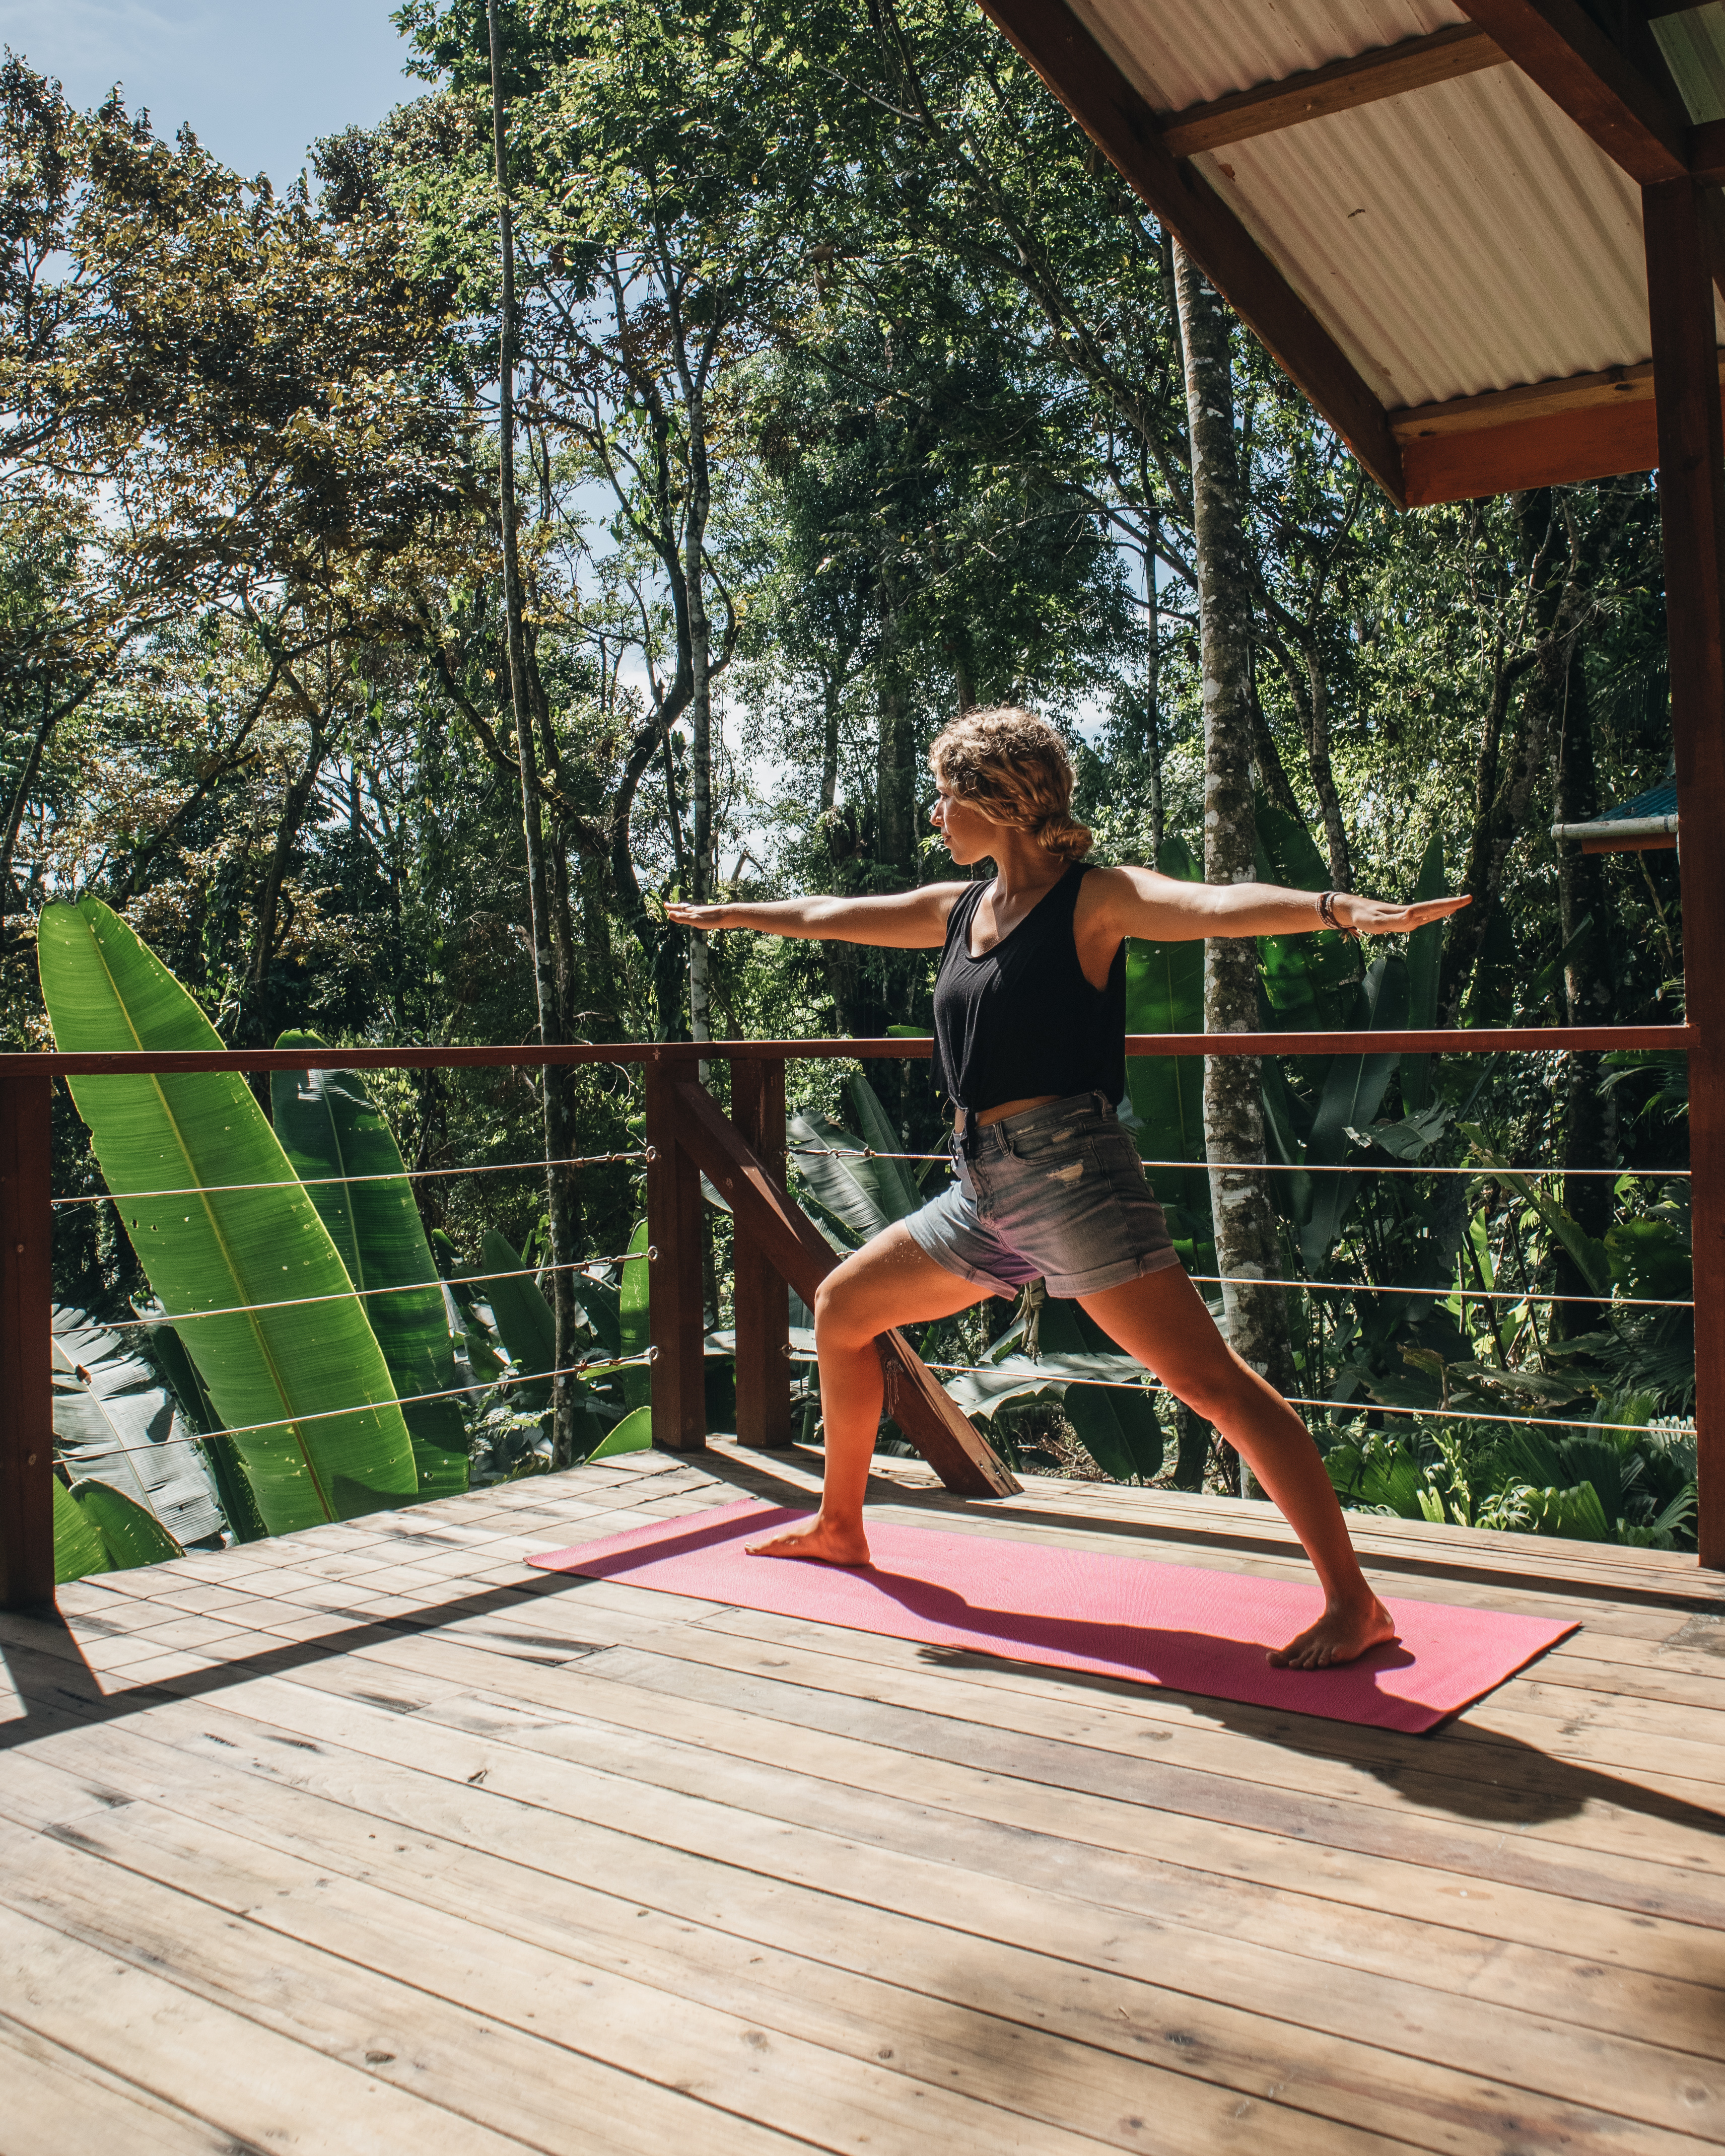 Tree Bungalow Right Deck with Guest Doing Yoga